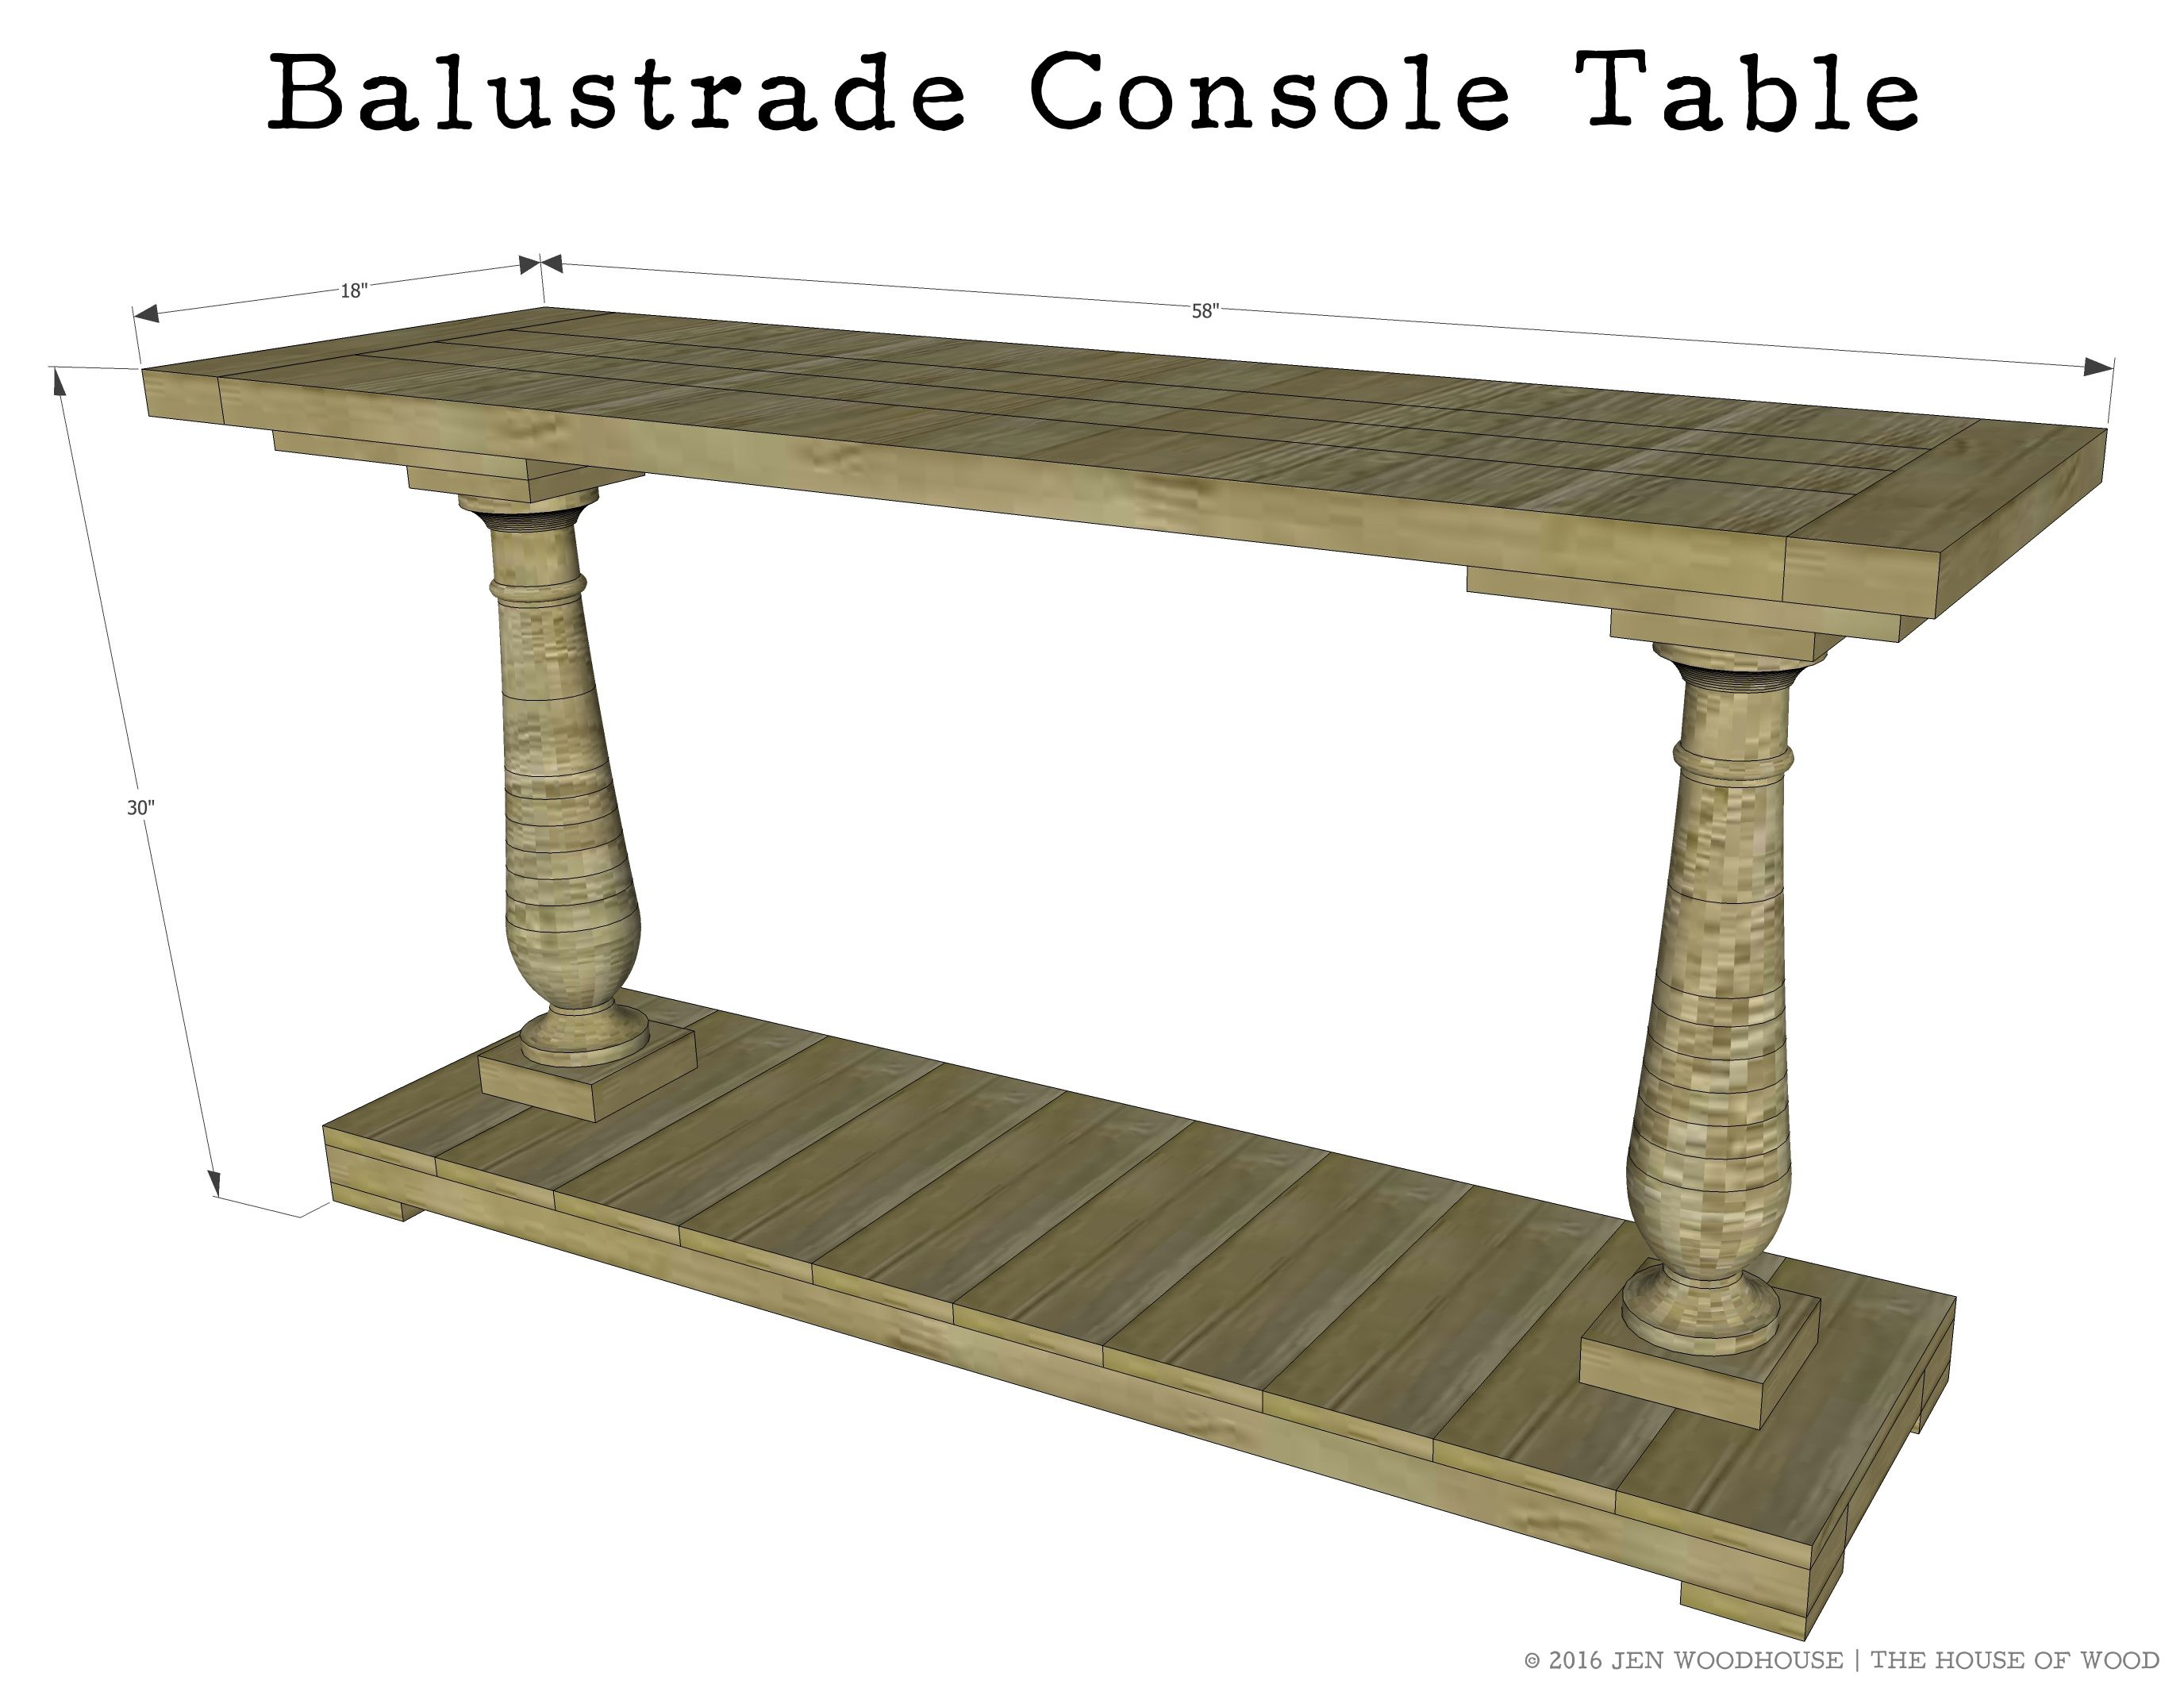 How to build a diy balustrade console table restoration hardware how to build a diy balustrade console table geotapseo Image collections